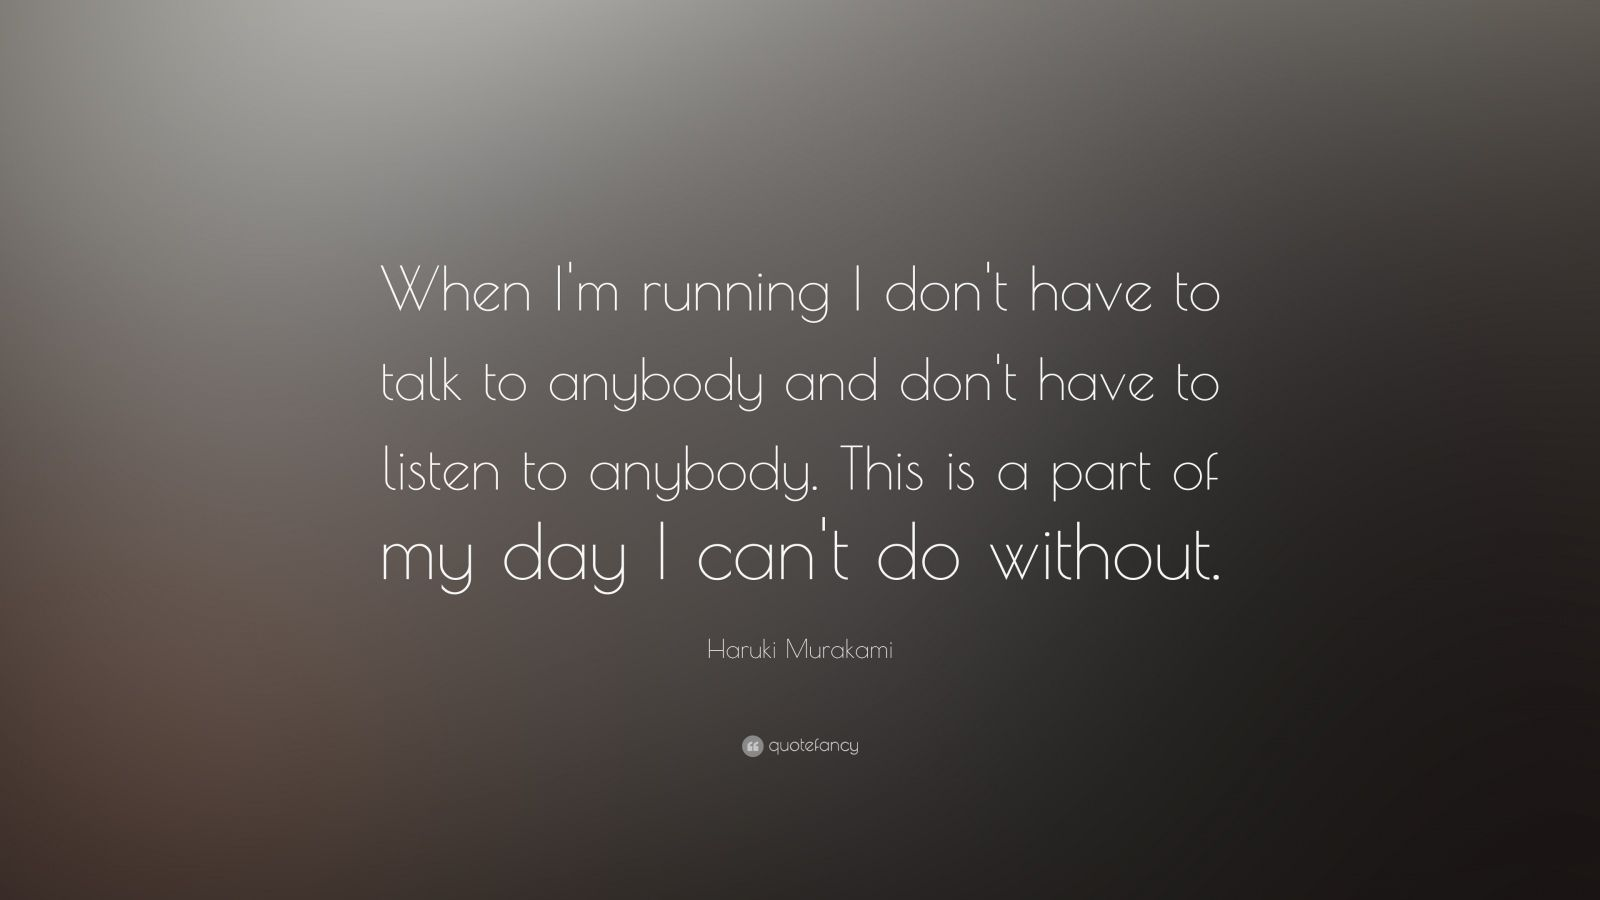 """Haruki Murakami Quote: """"When I'm running I don't have to talk to anybody and don't have to listen to anybody. This is a part of my day I can't do without."""""""